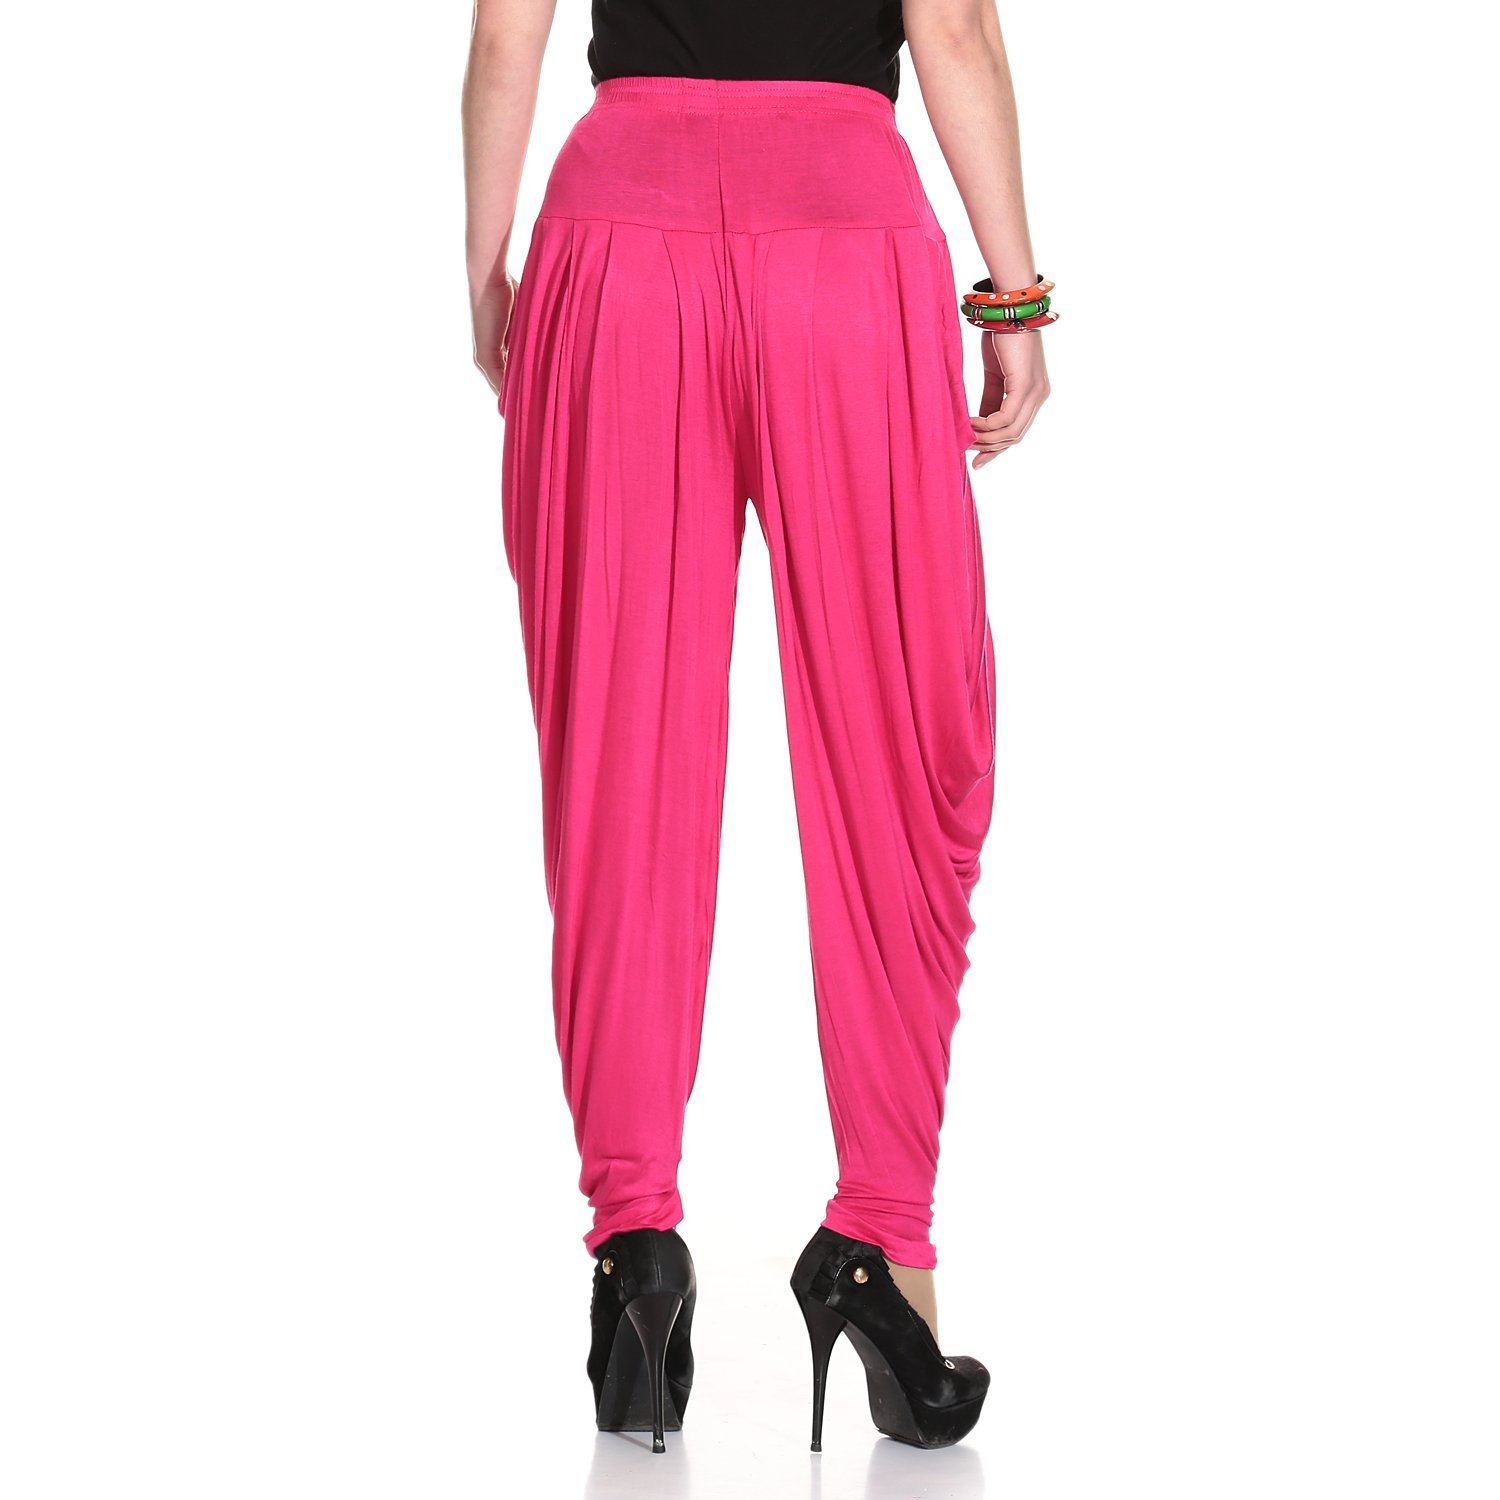 Ardour Dark Pink Relaxed Comfortable Cotton Blend Belly Dance Pants for Women- Free Size by Ardour (Image #3)